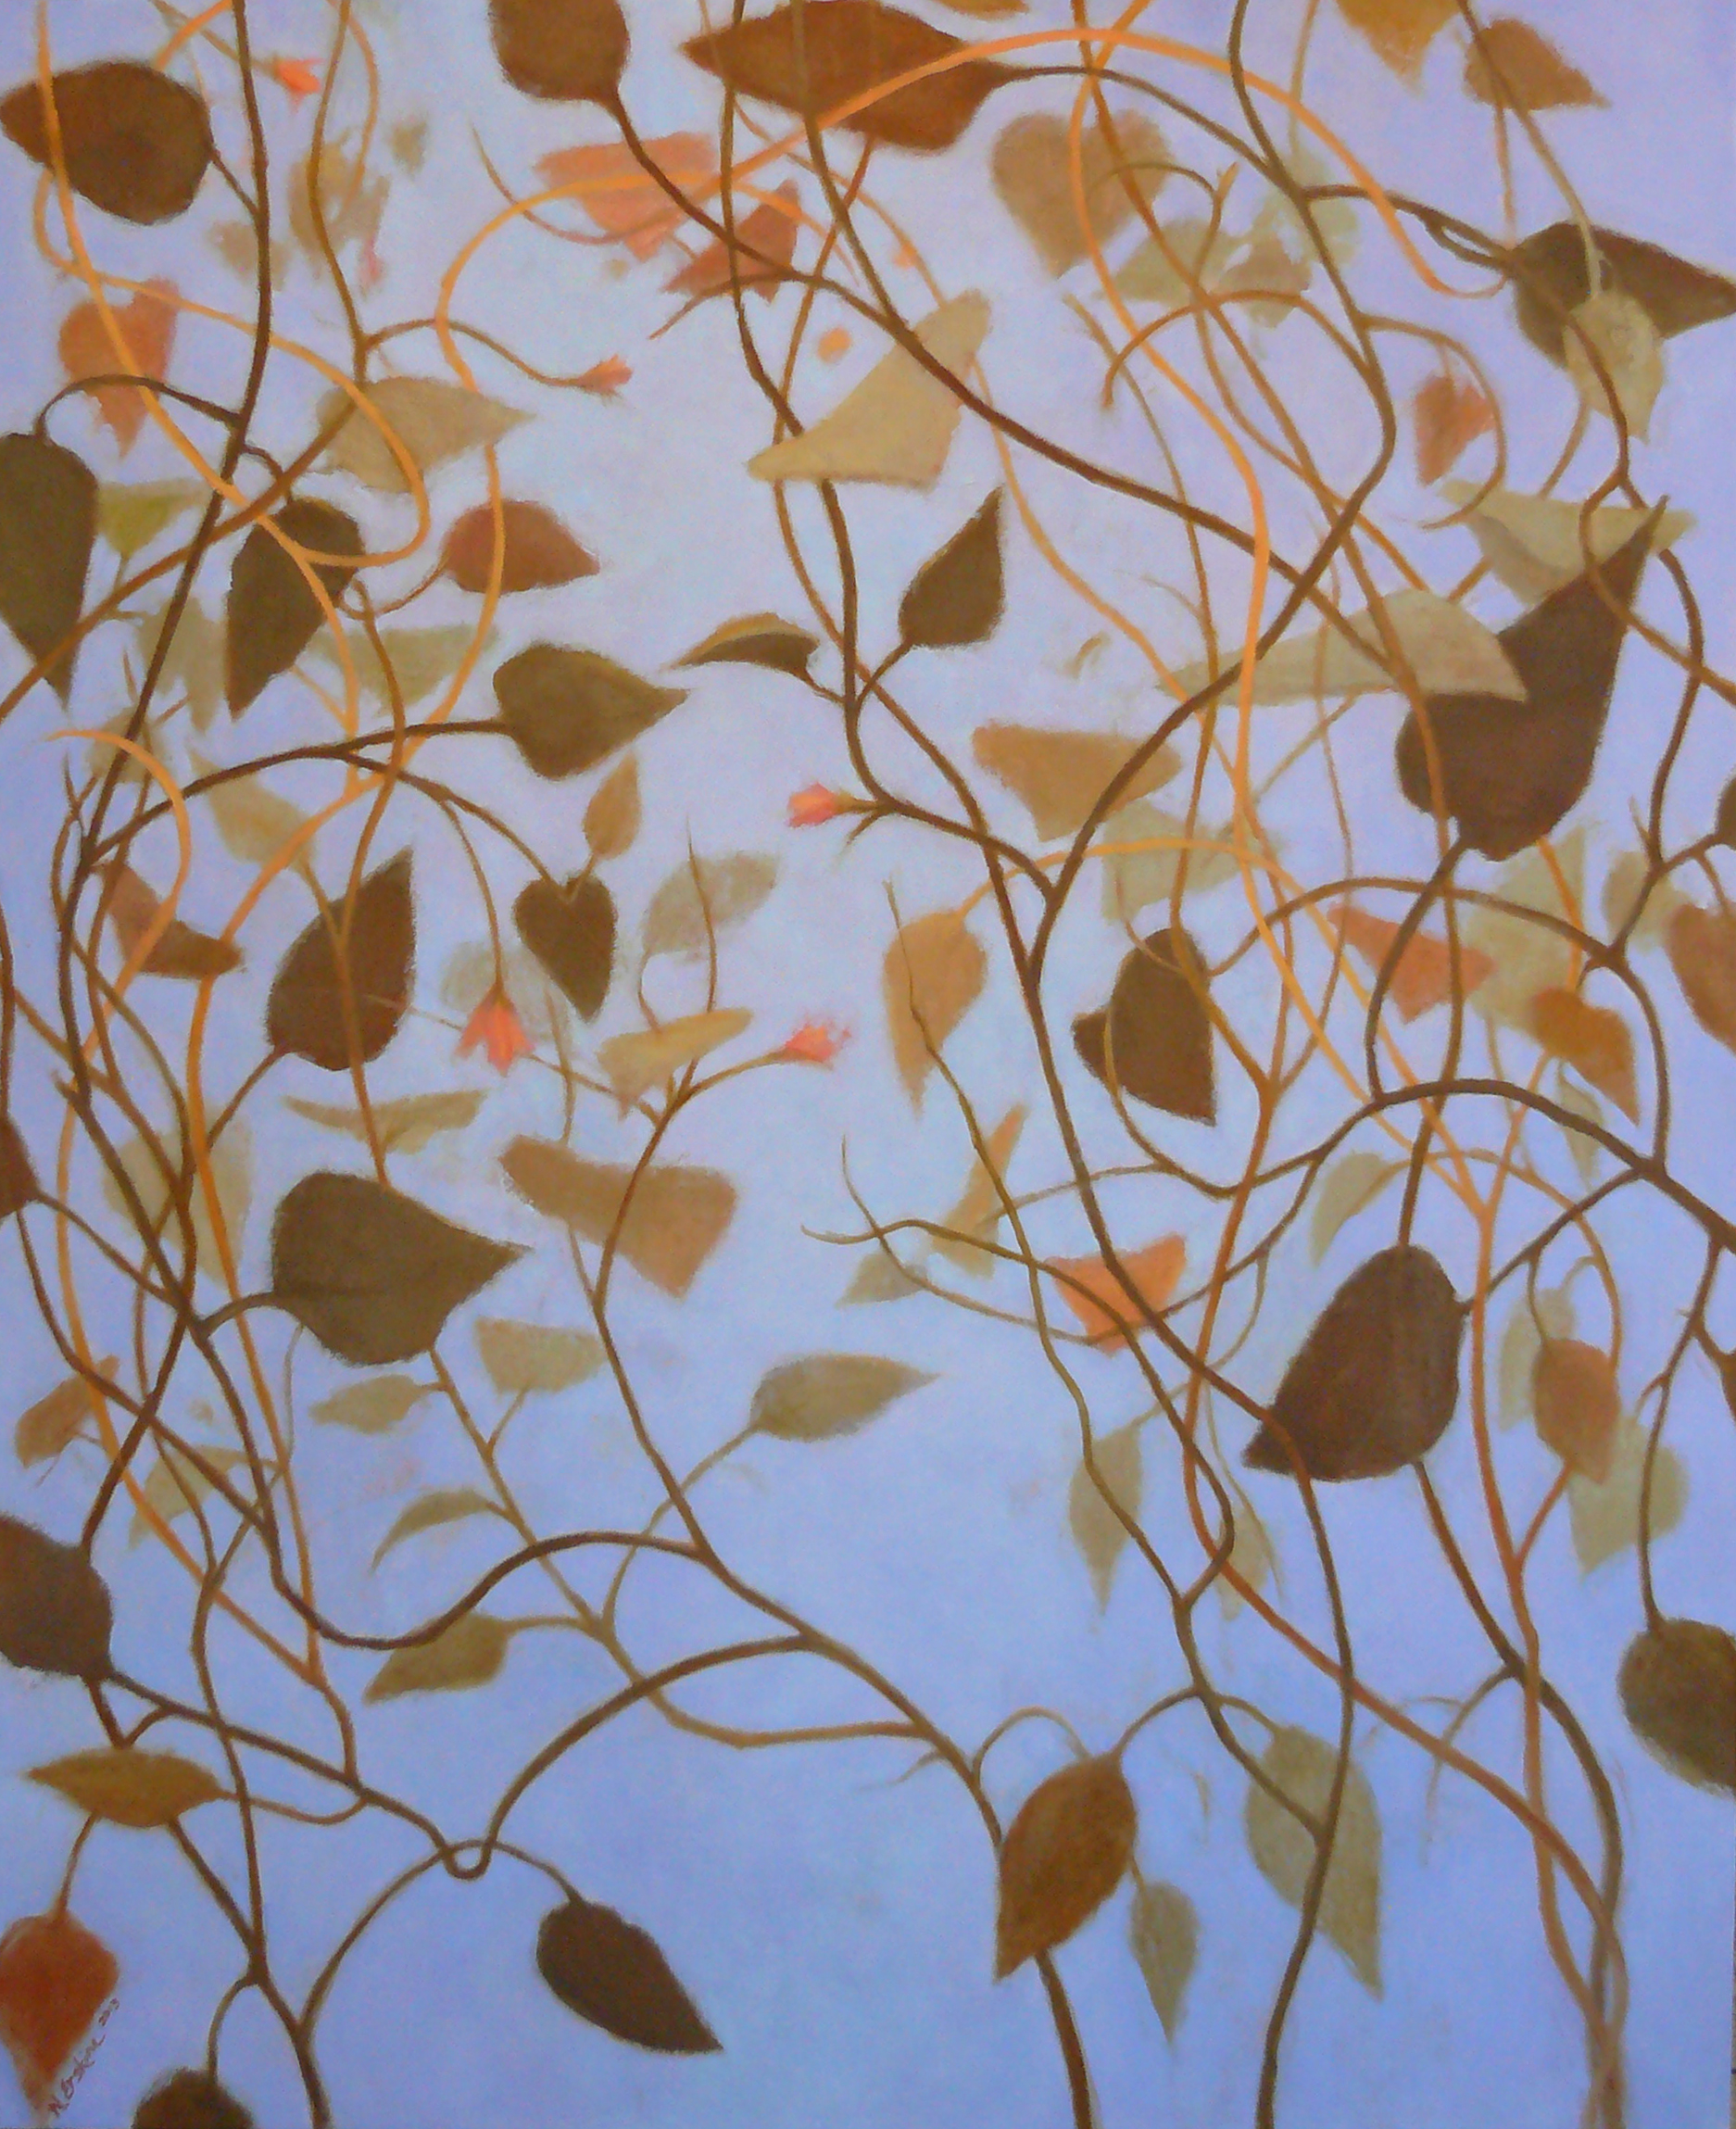 brown and tan vines on a blue background